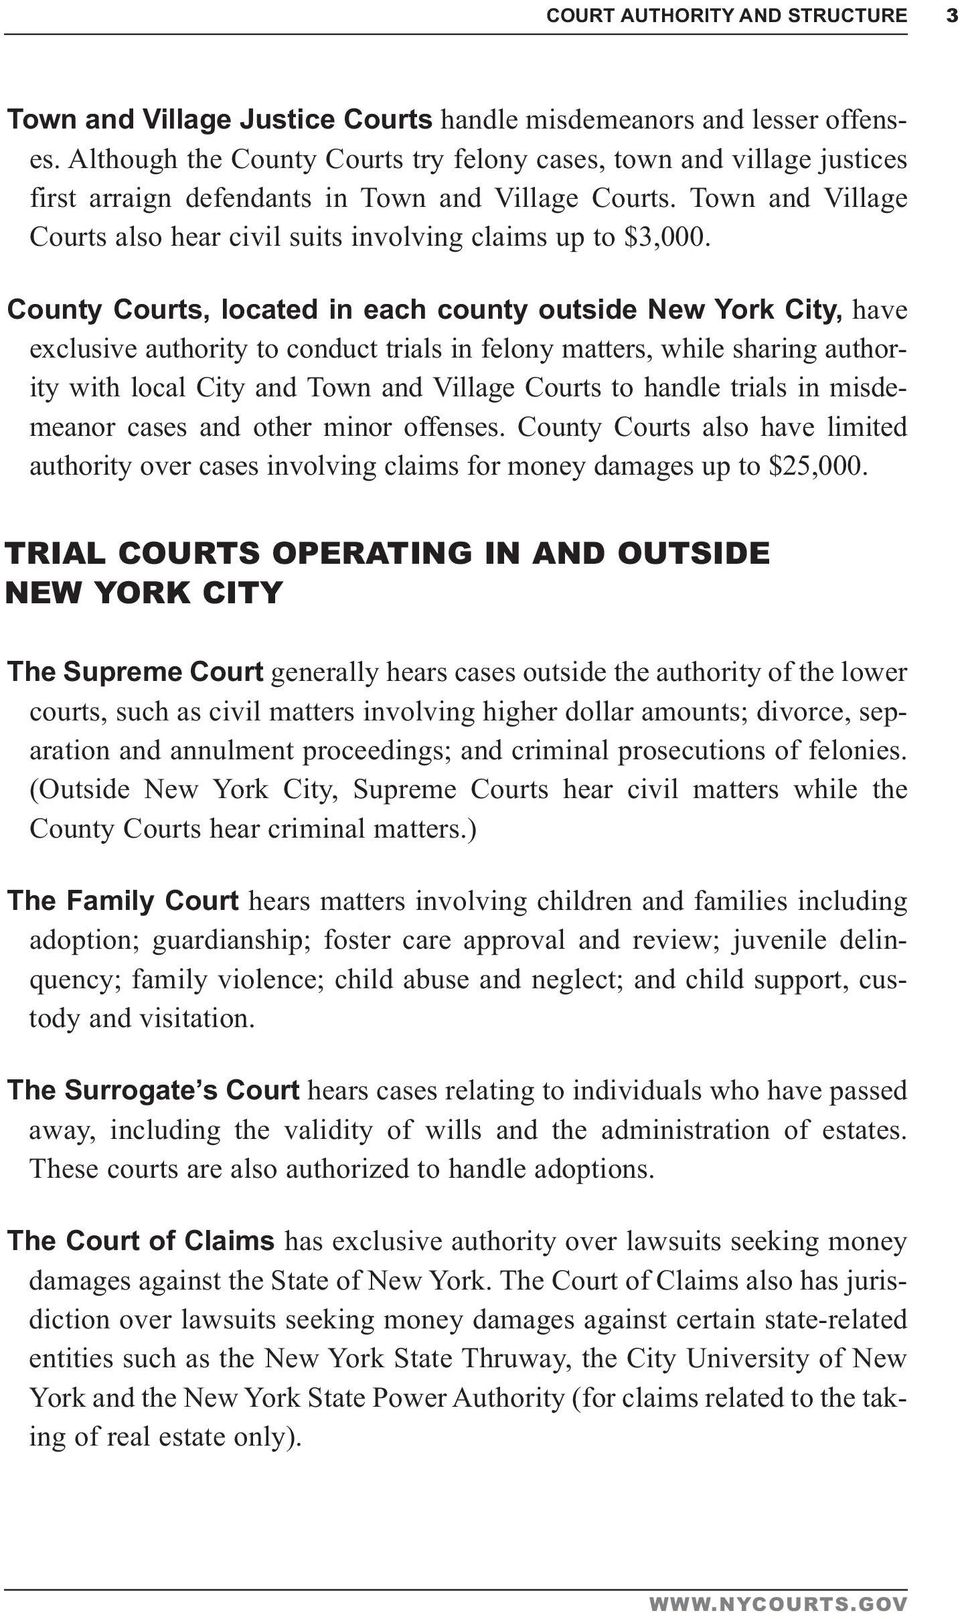 County Courts, located in each county outside New York City, have exclusive authority to conduct trials in felony matters, while sharing authority with local City and Town and Village Courts to